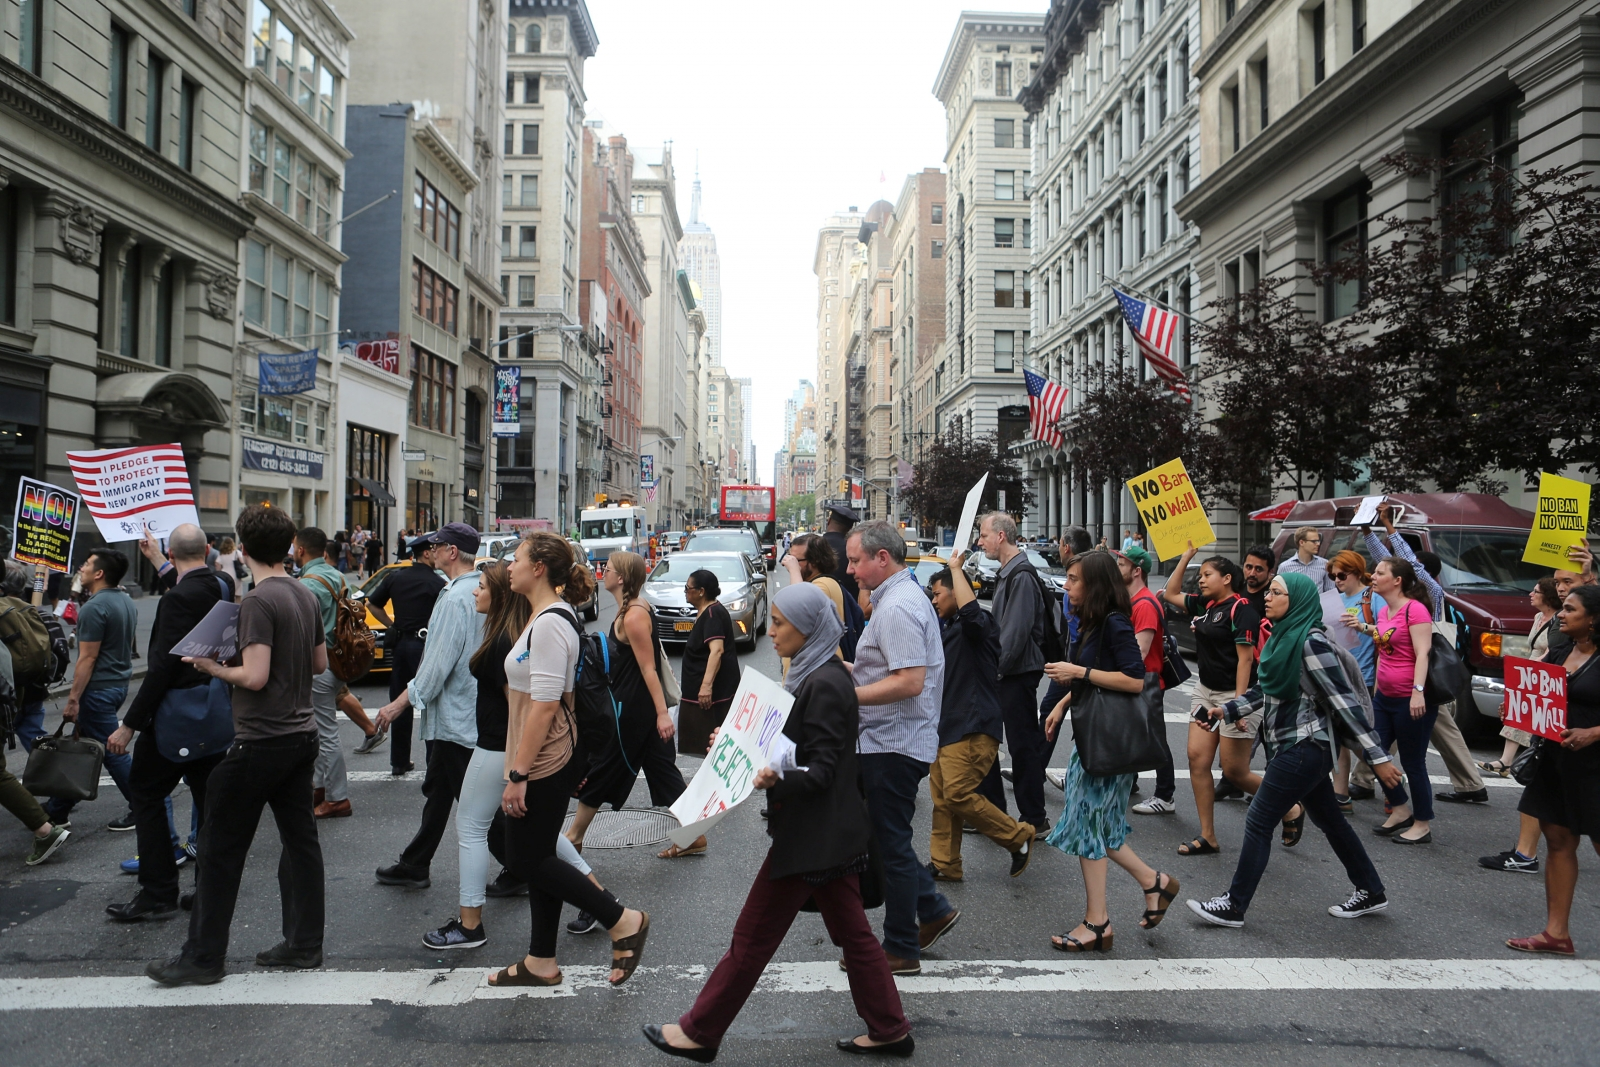 thousands-march-in-anti-donald-trump-protests-across-u-s